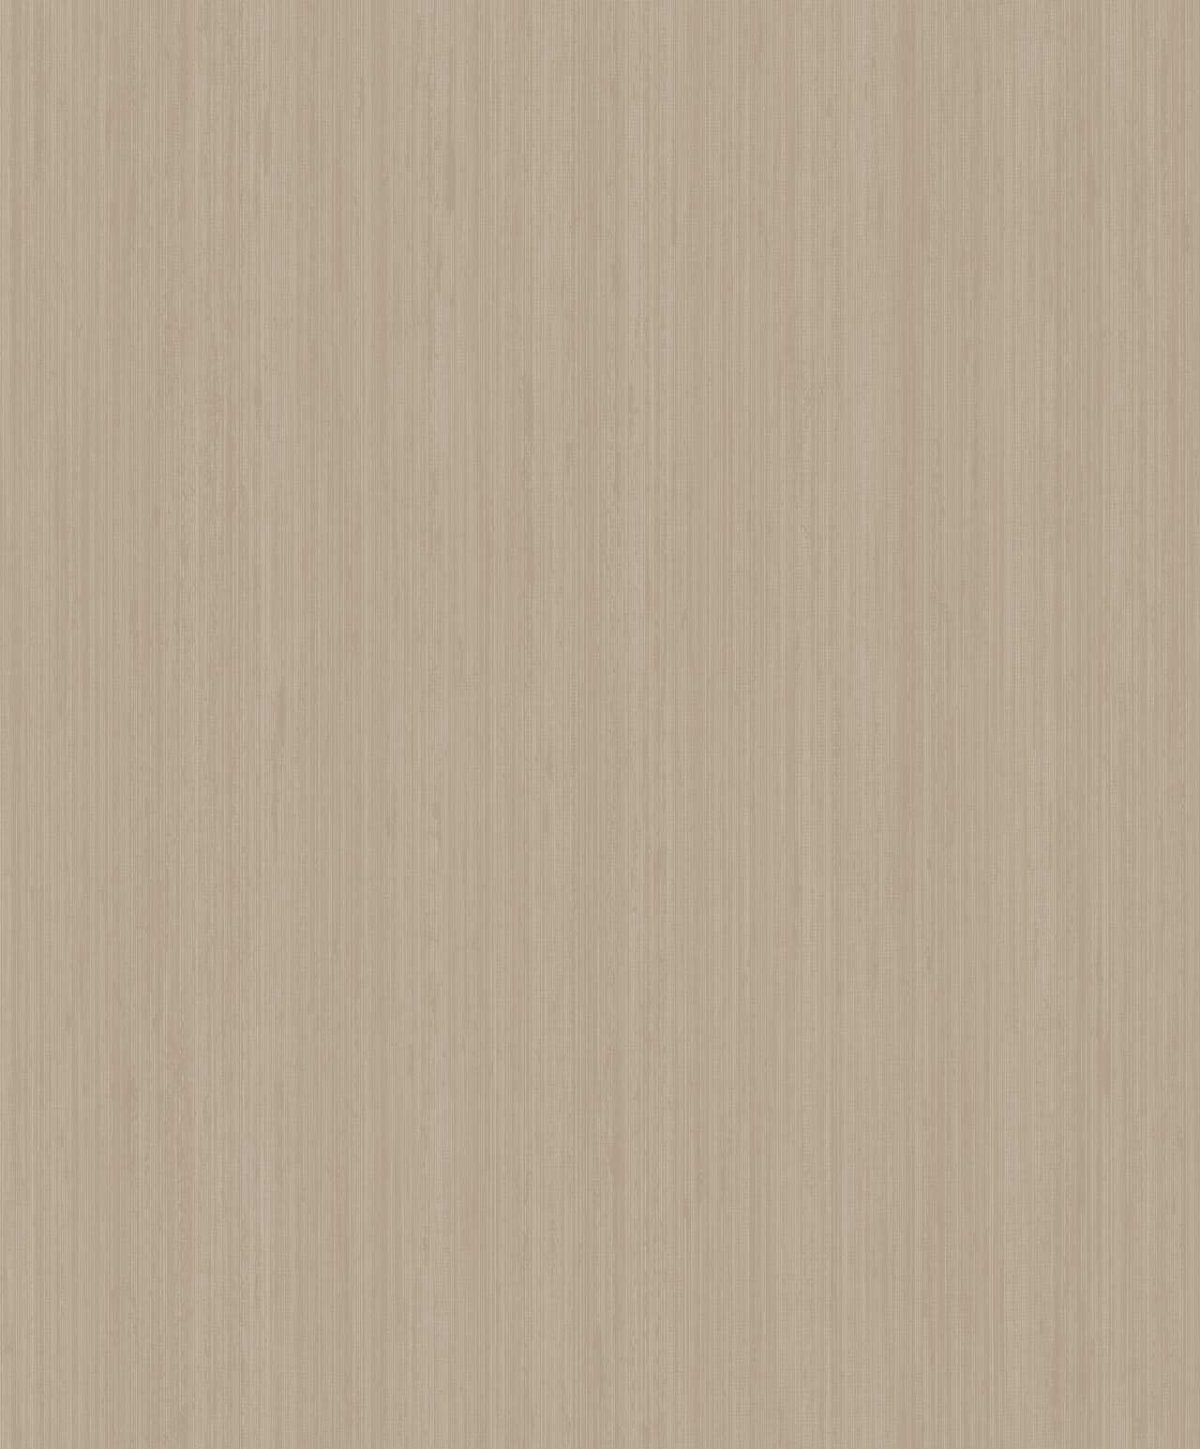 Sloan-Luxury-Wallpaper-SL00816-SLOANE-